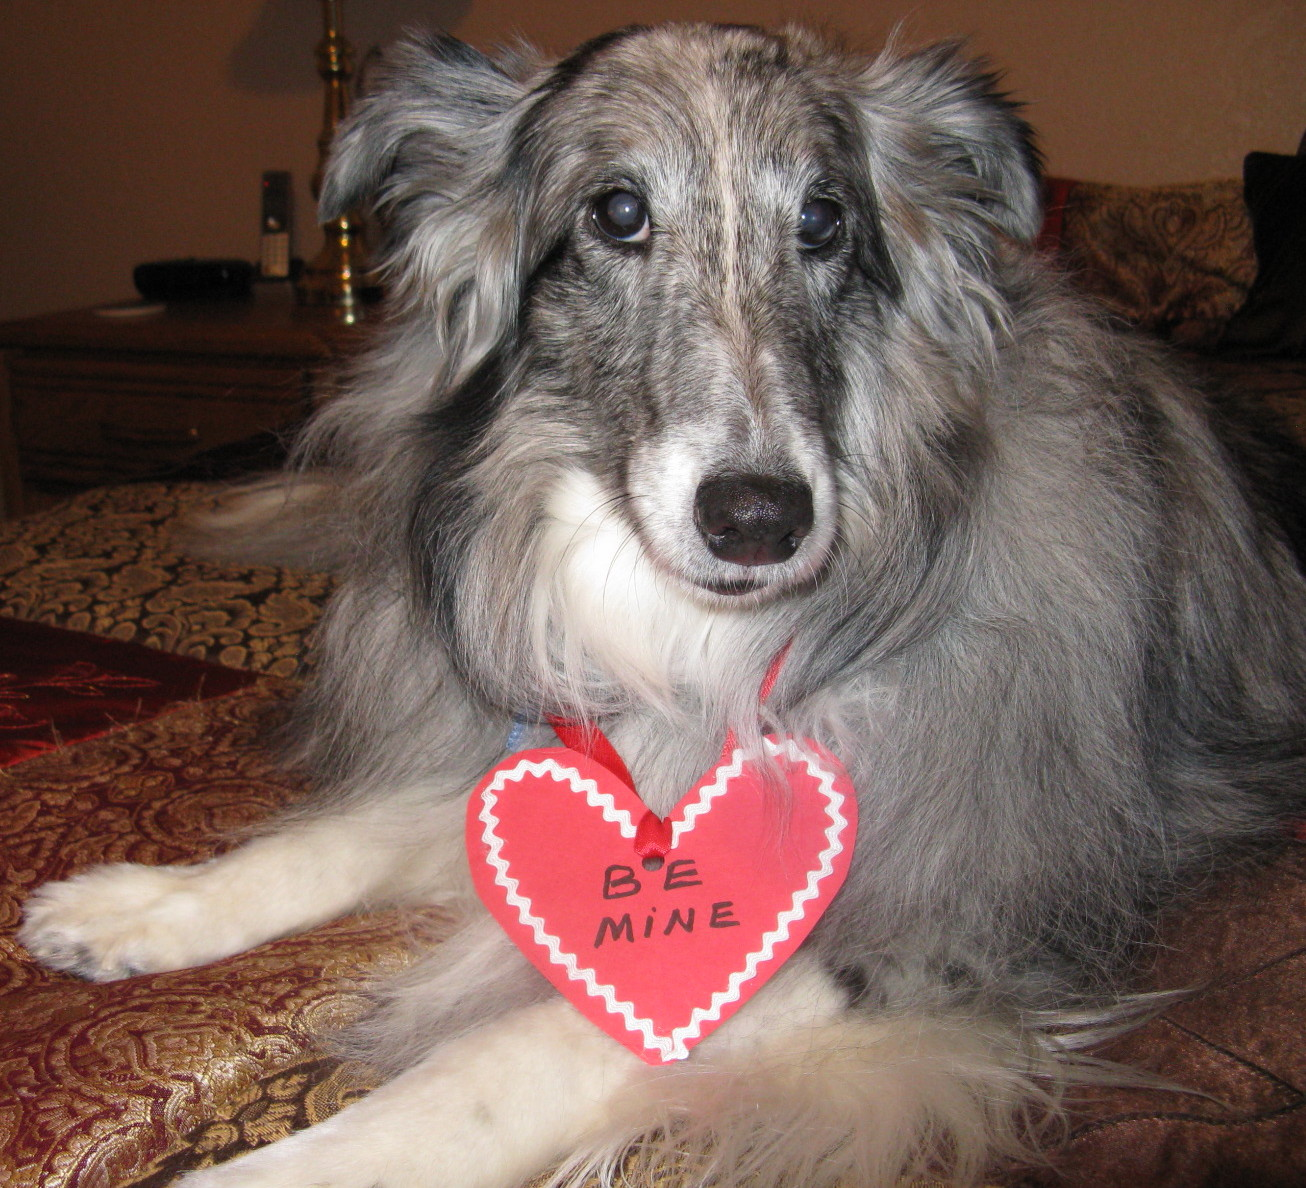 Cookie, a rescue Collie from Pueblo Collie Sheltie REscue